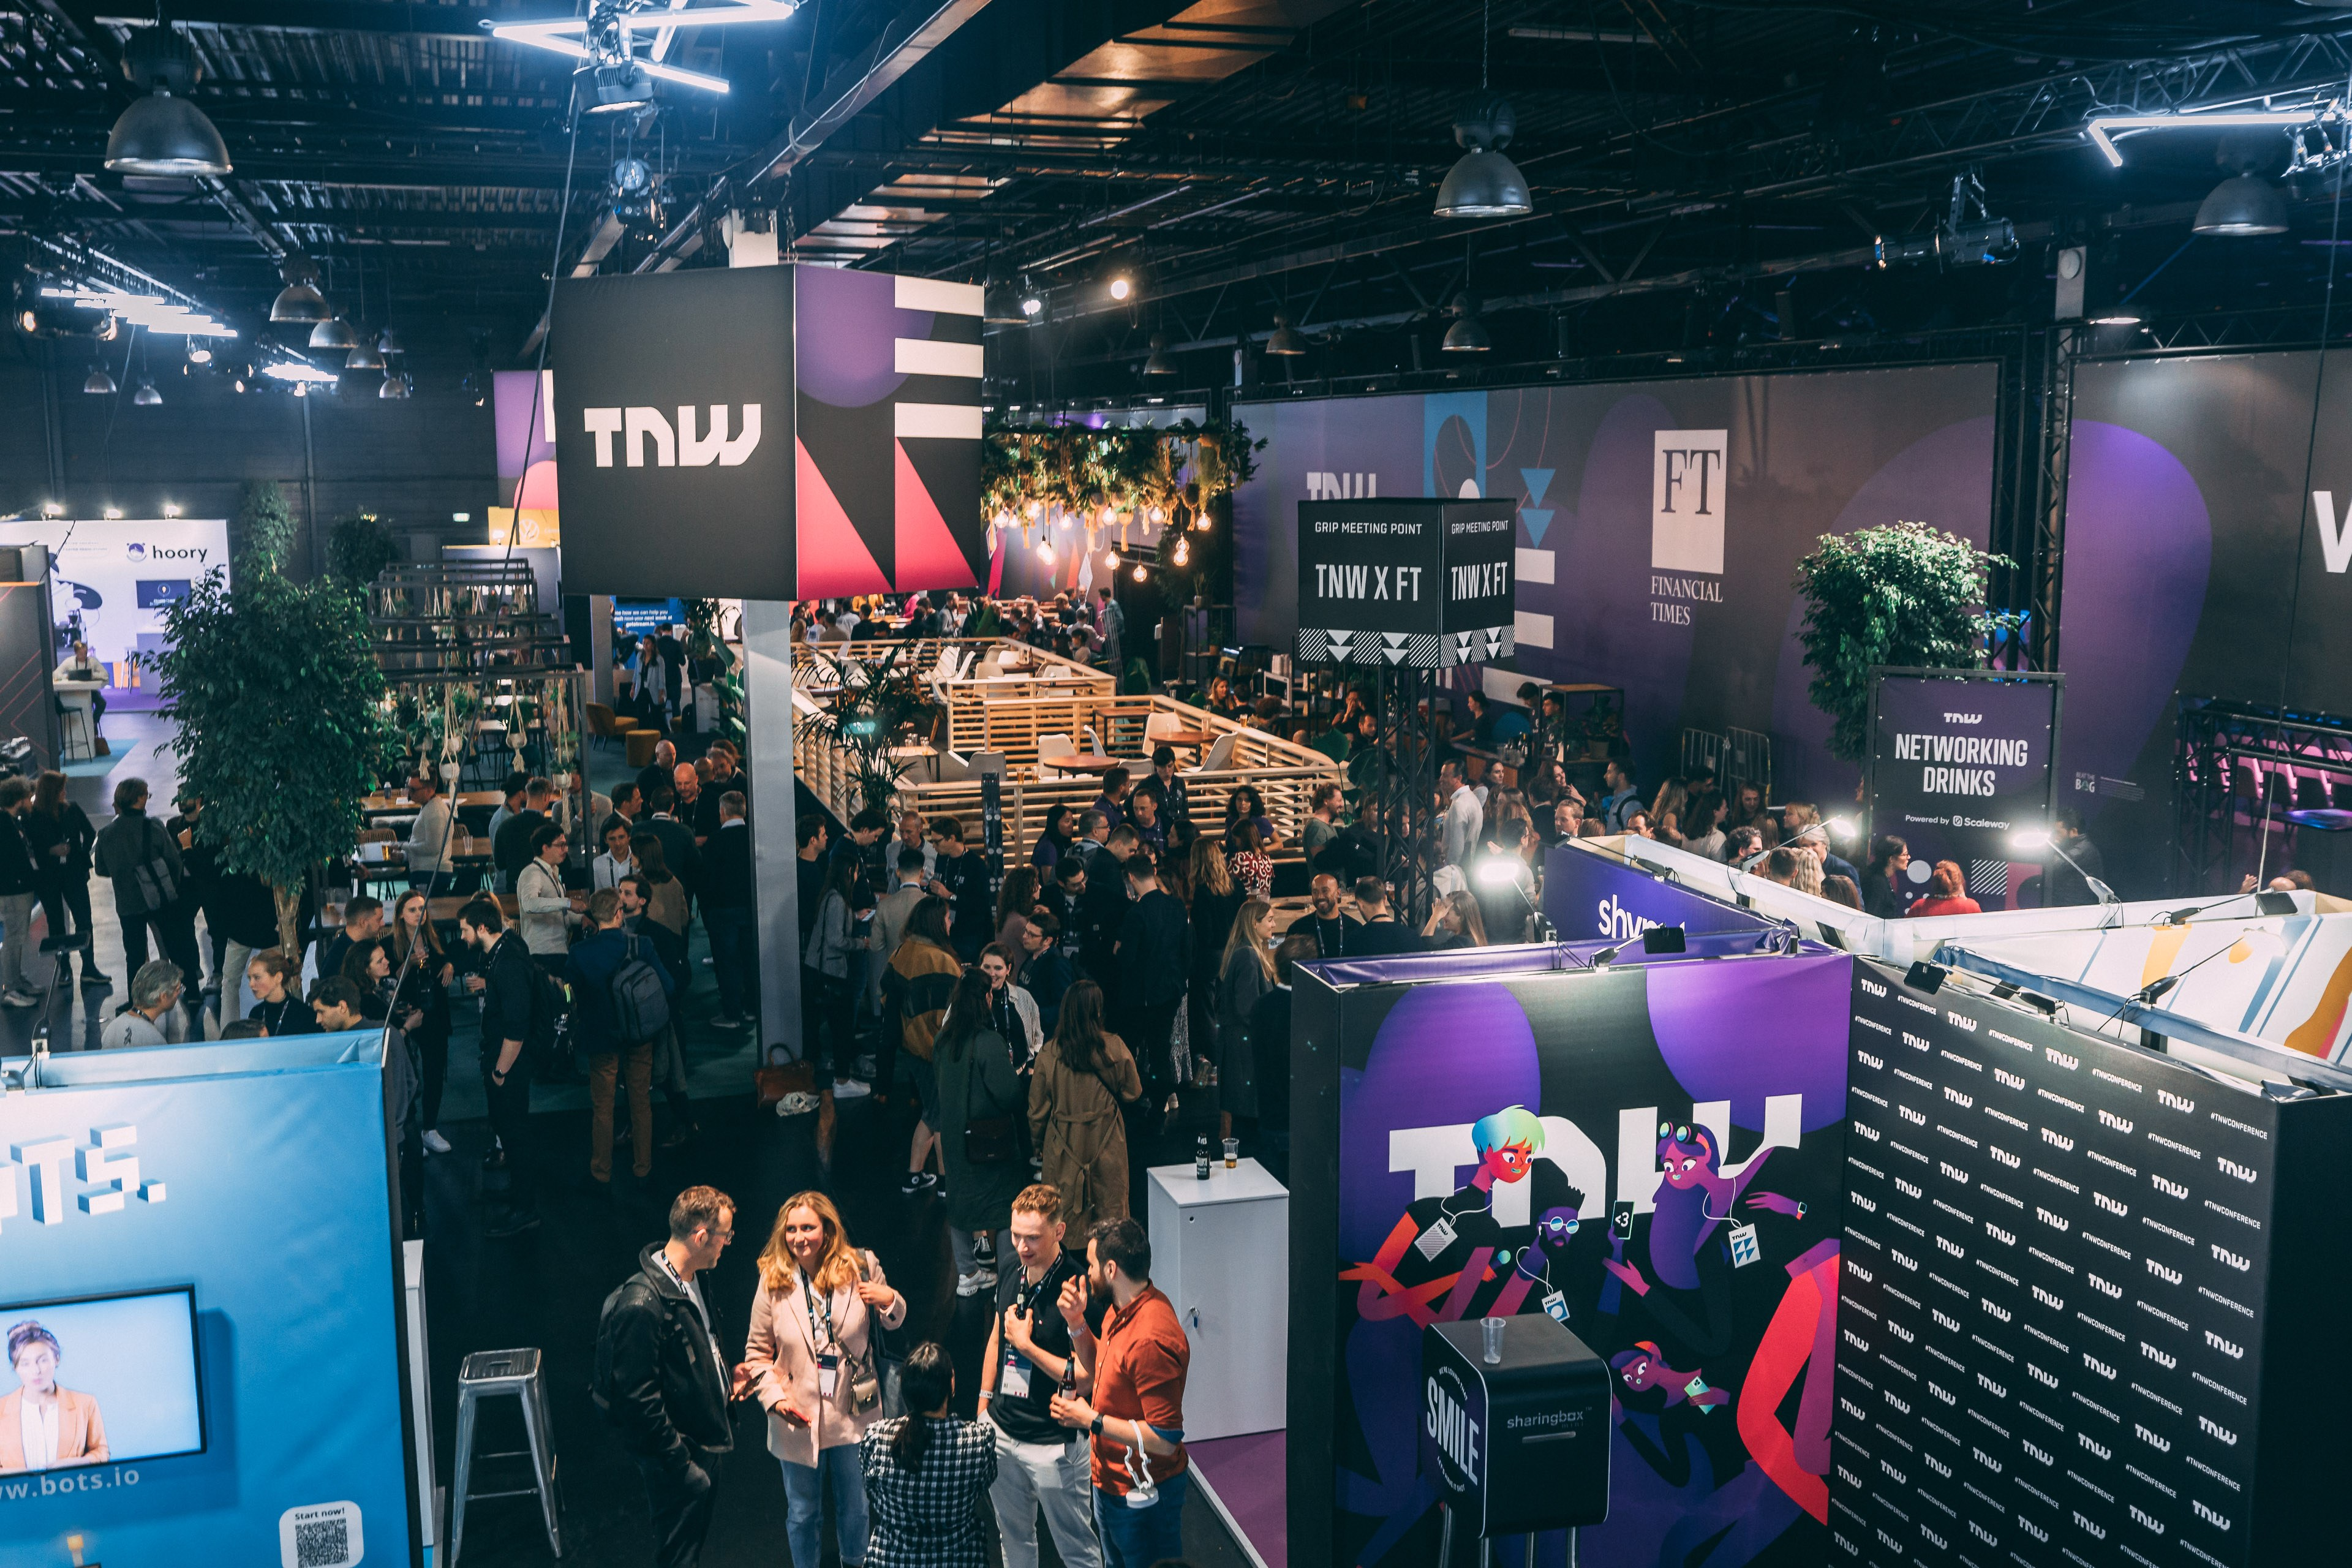 ARE YOU READY FOR TNW CONFERENCE 2022?